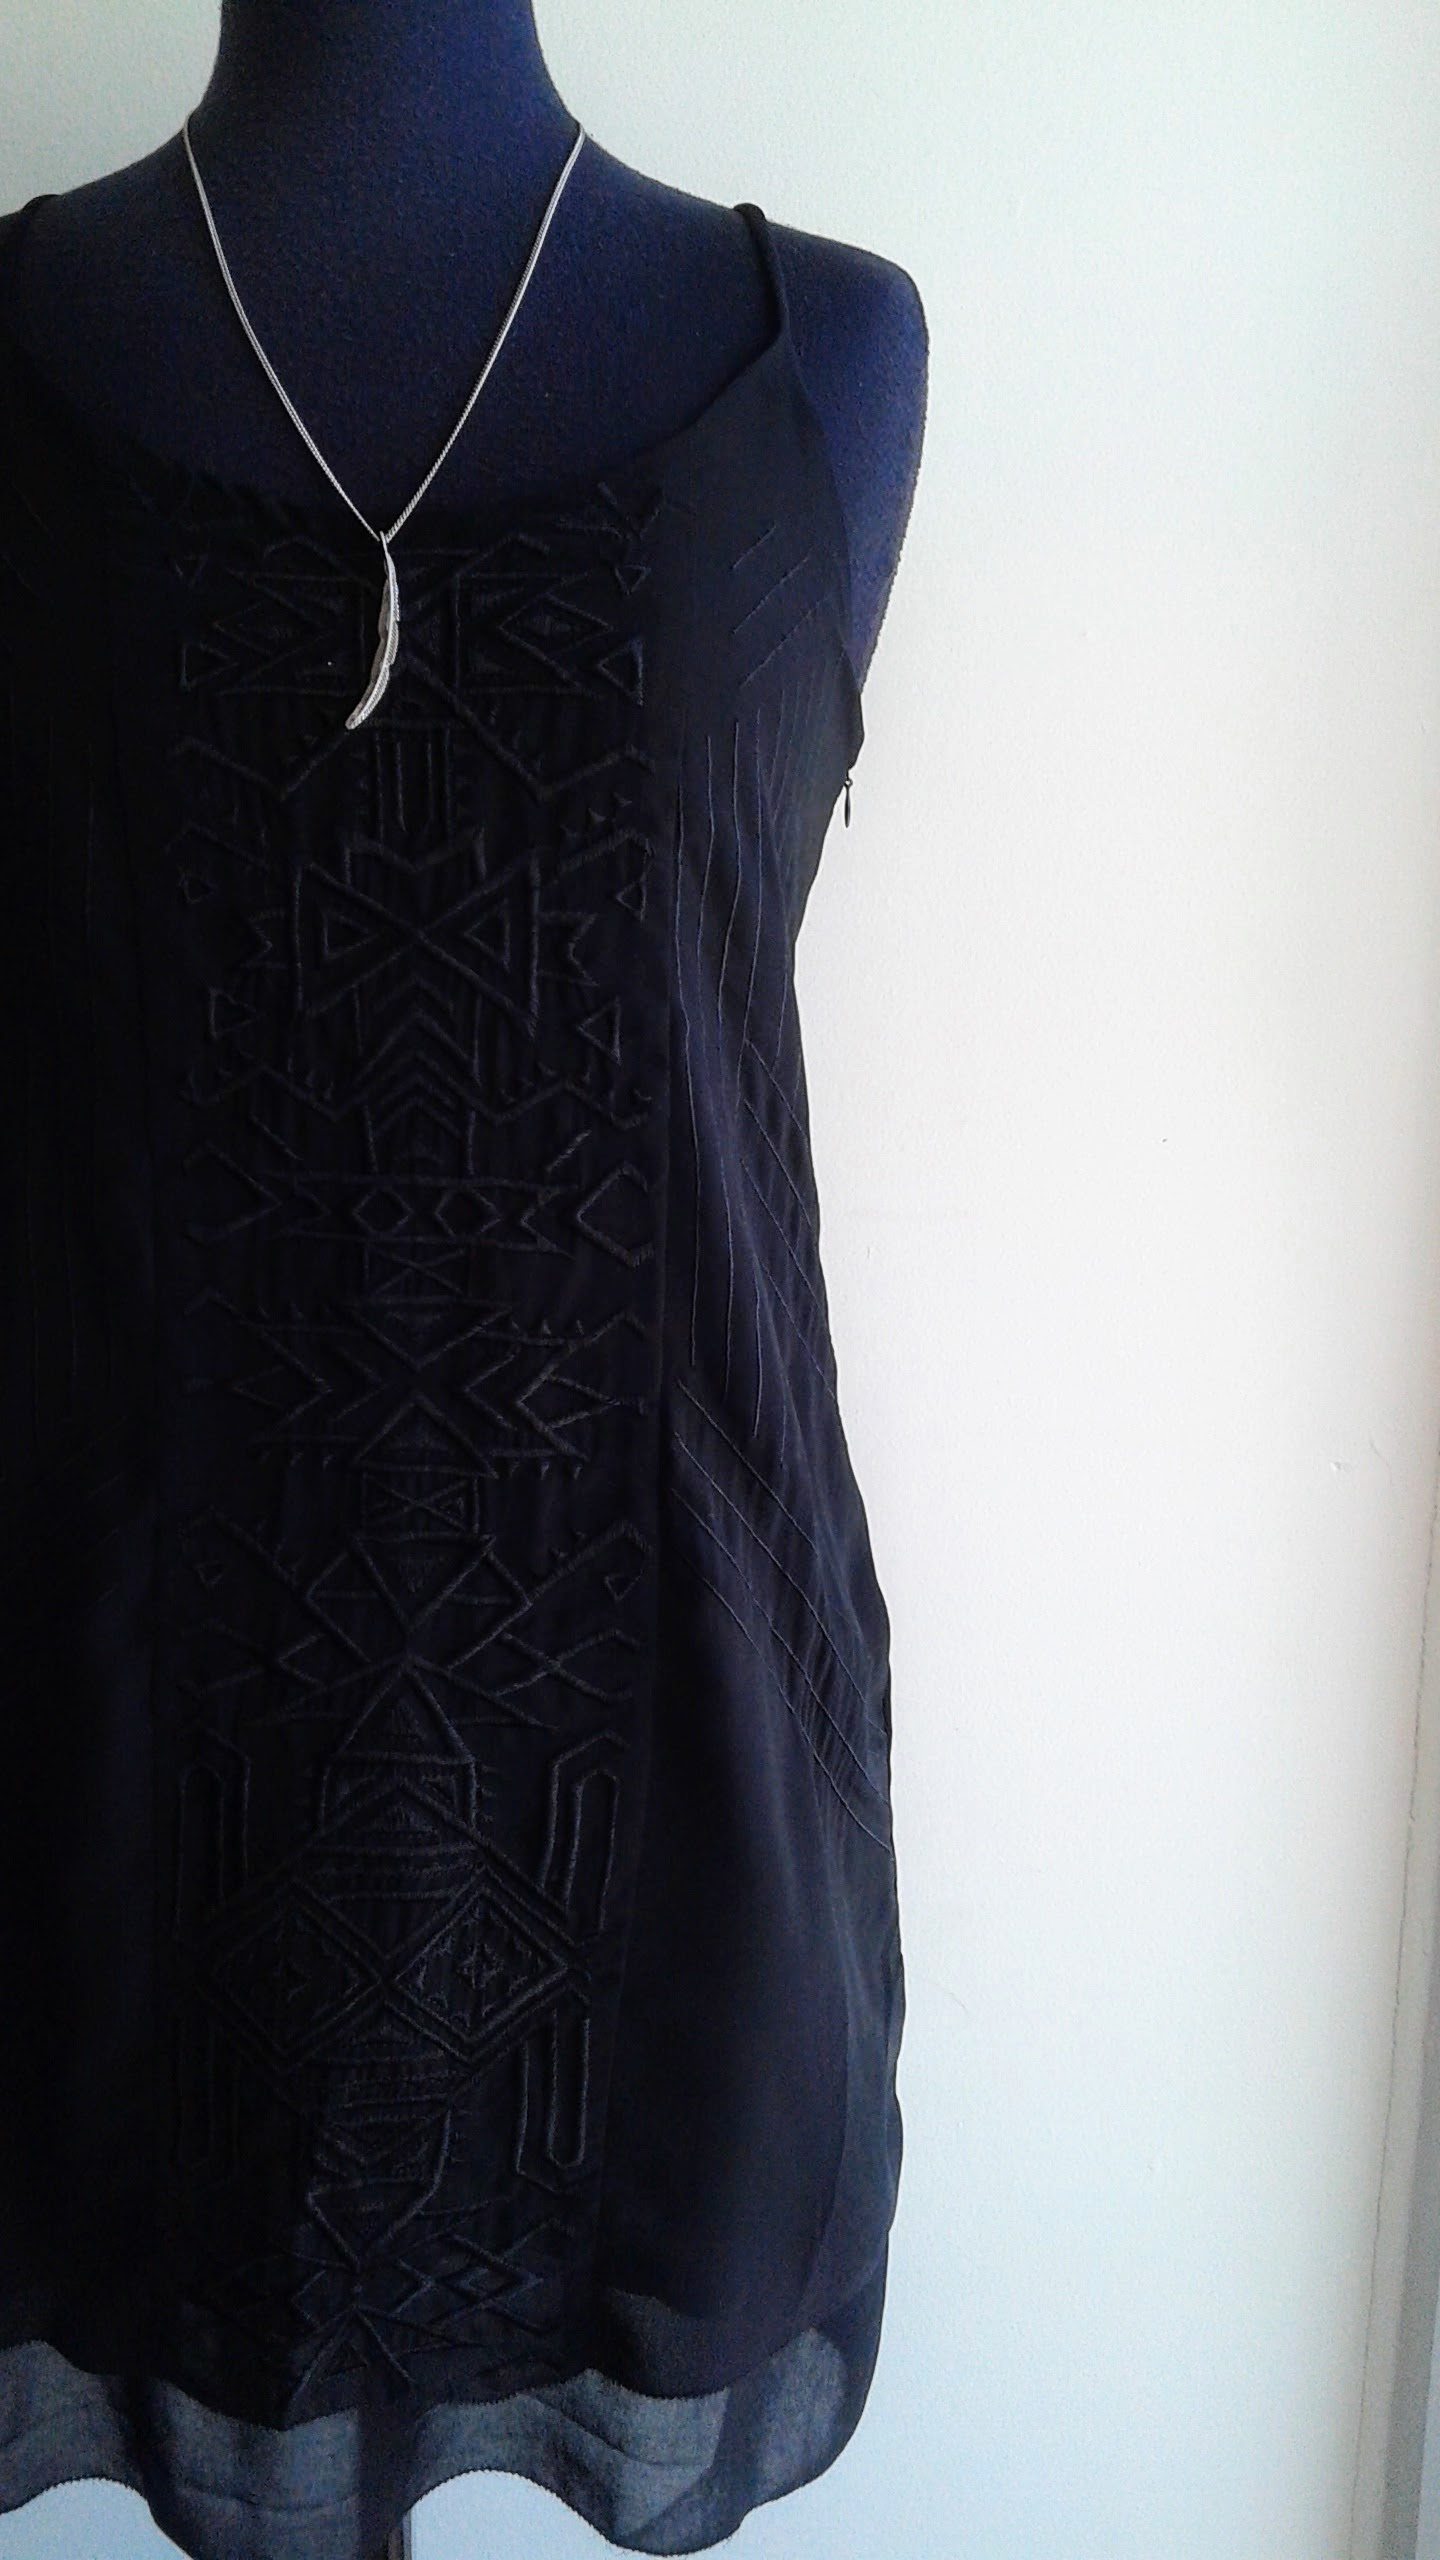 Gentle Fawn dress; Size S, $30. Necklace $26